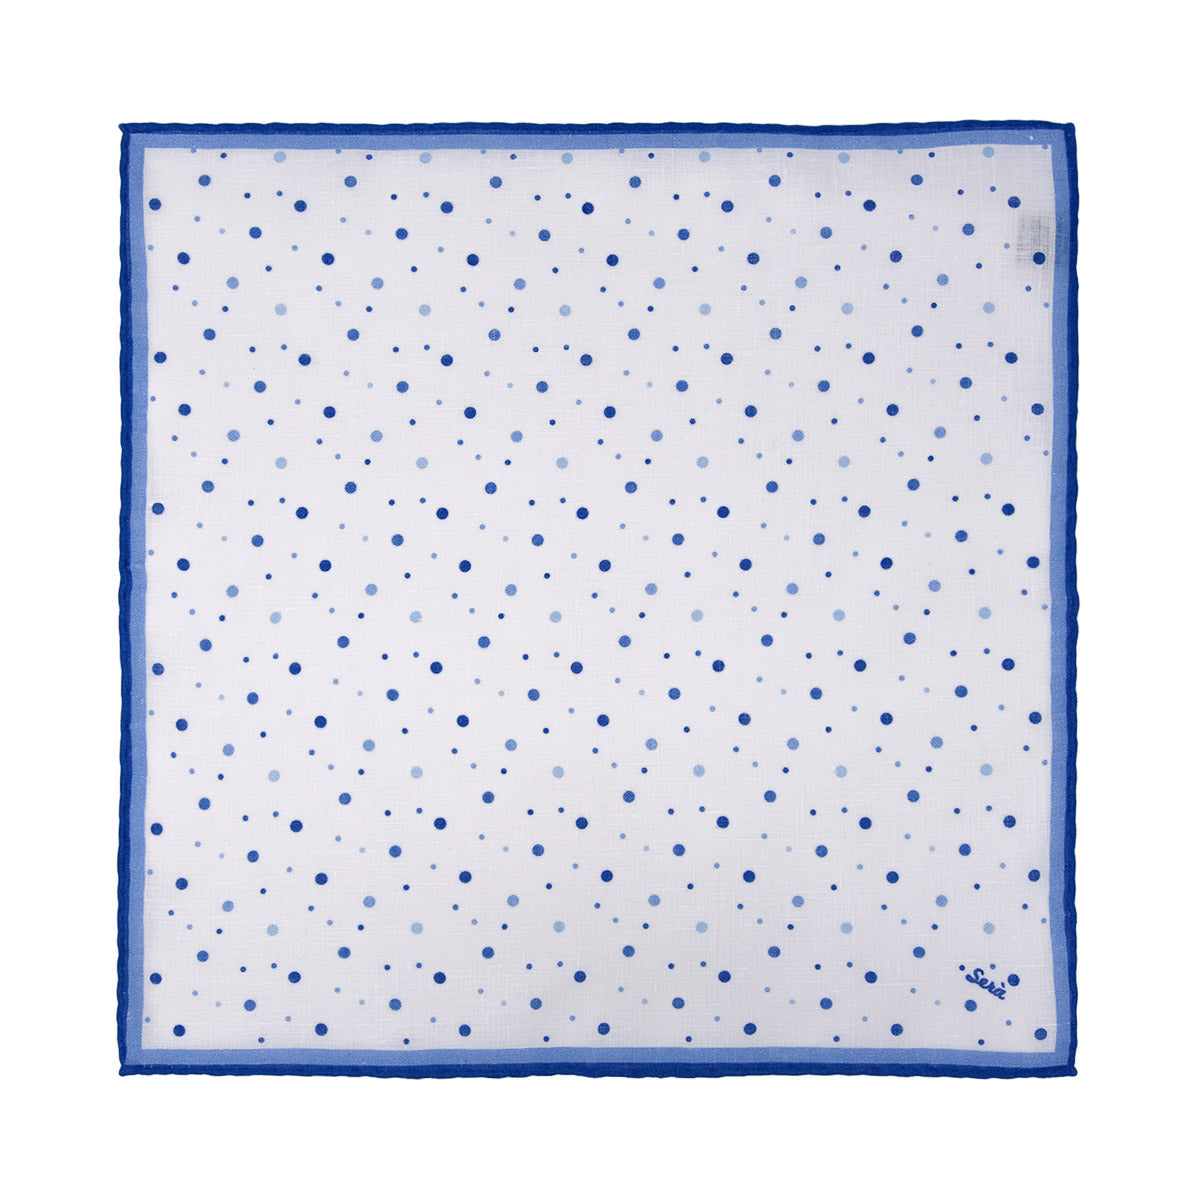 Blue Dots Linen Pocket Square - serafinesilk